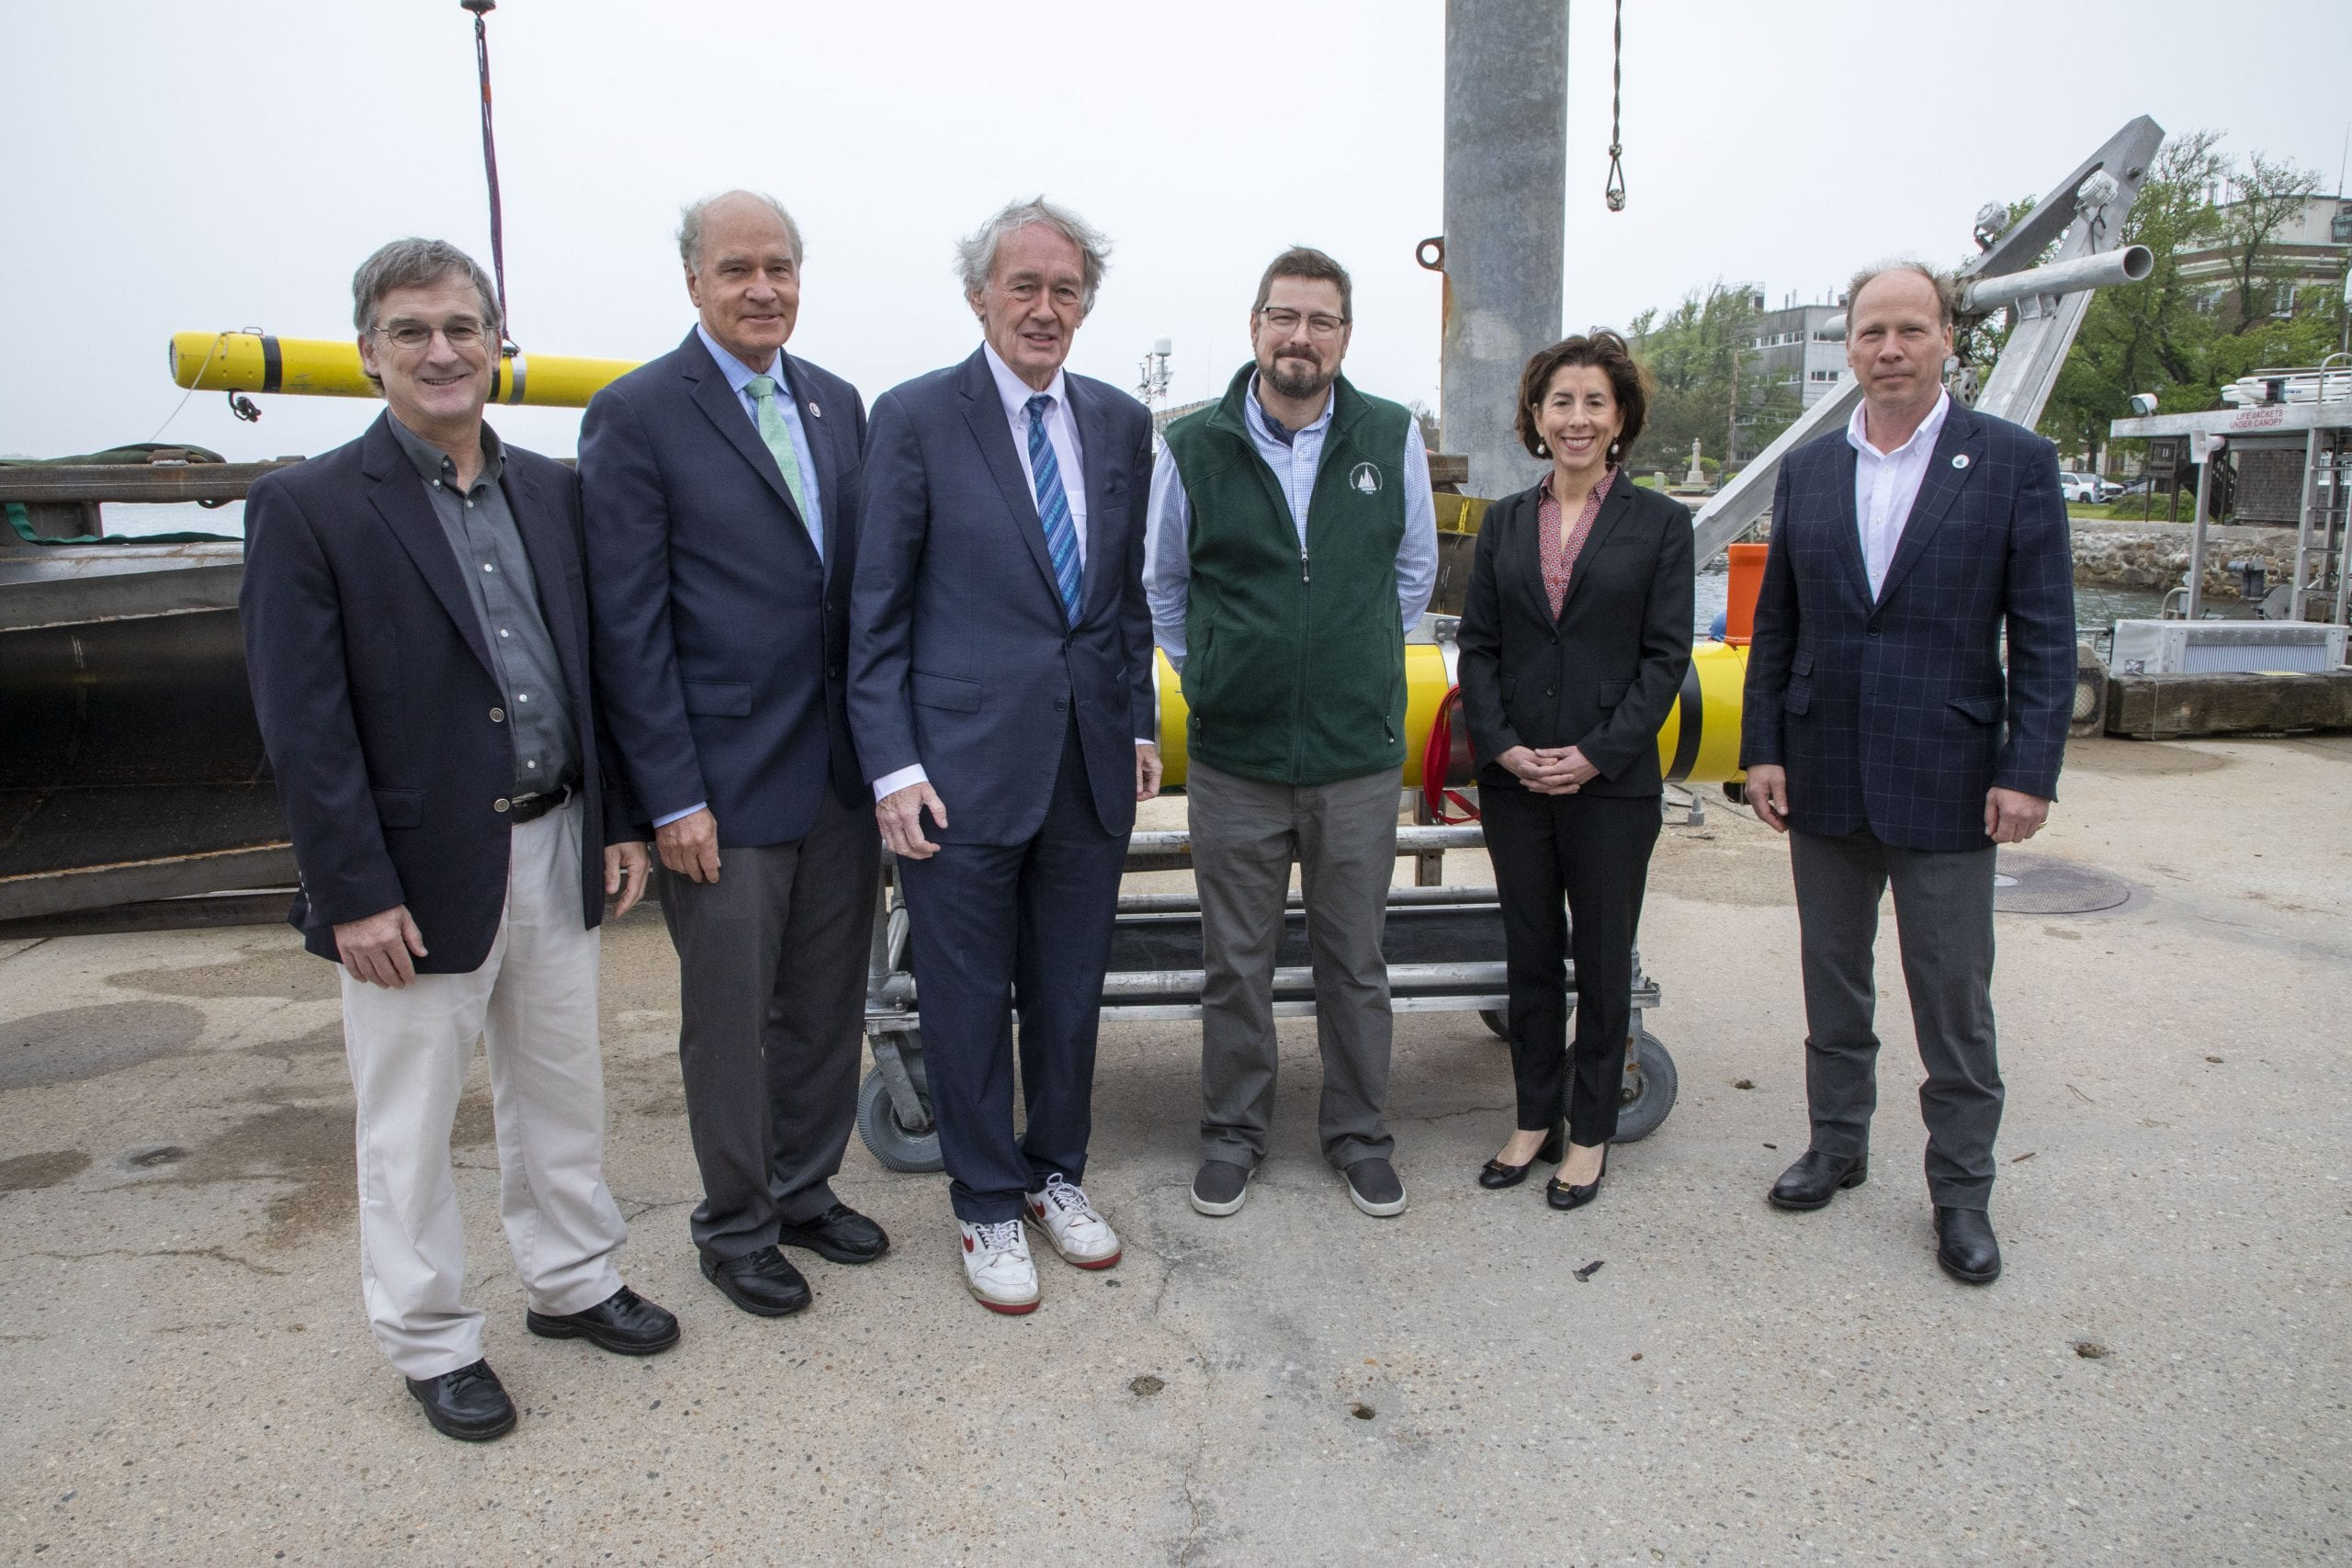 (From left to right): WHOI Deputy Director and Vice President for Science and Engineering Rick Murray, Mass. Congressman William Keating, Mass. Senator Edward Markey, WHOI's Carl Hartsfield, U.S. Commerce Secretary Gina Raimondo and WHOI President and Director Peter de Menocal. (Photo by Jayne Doucette, © Woods Hole Oceanographic Institution)